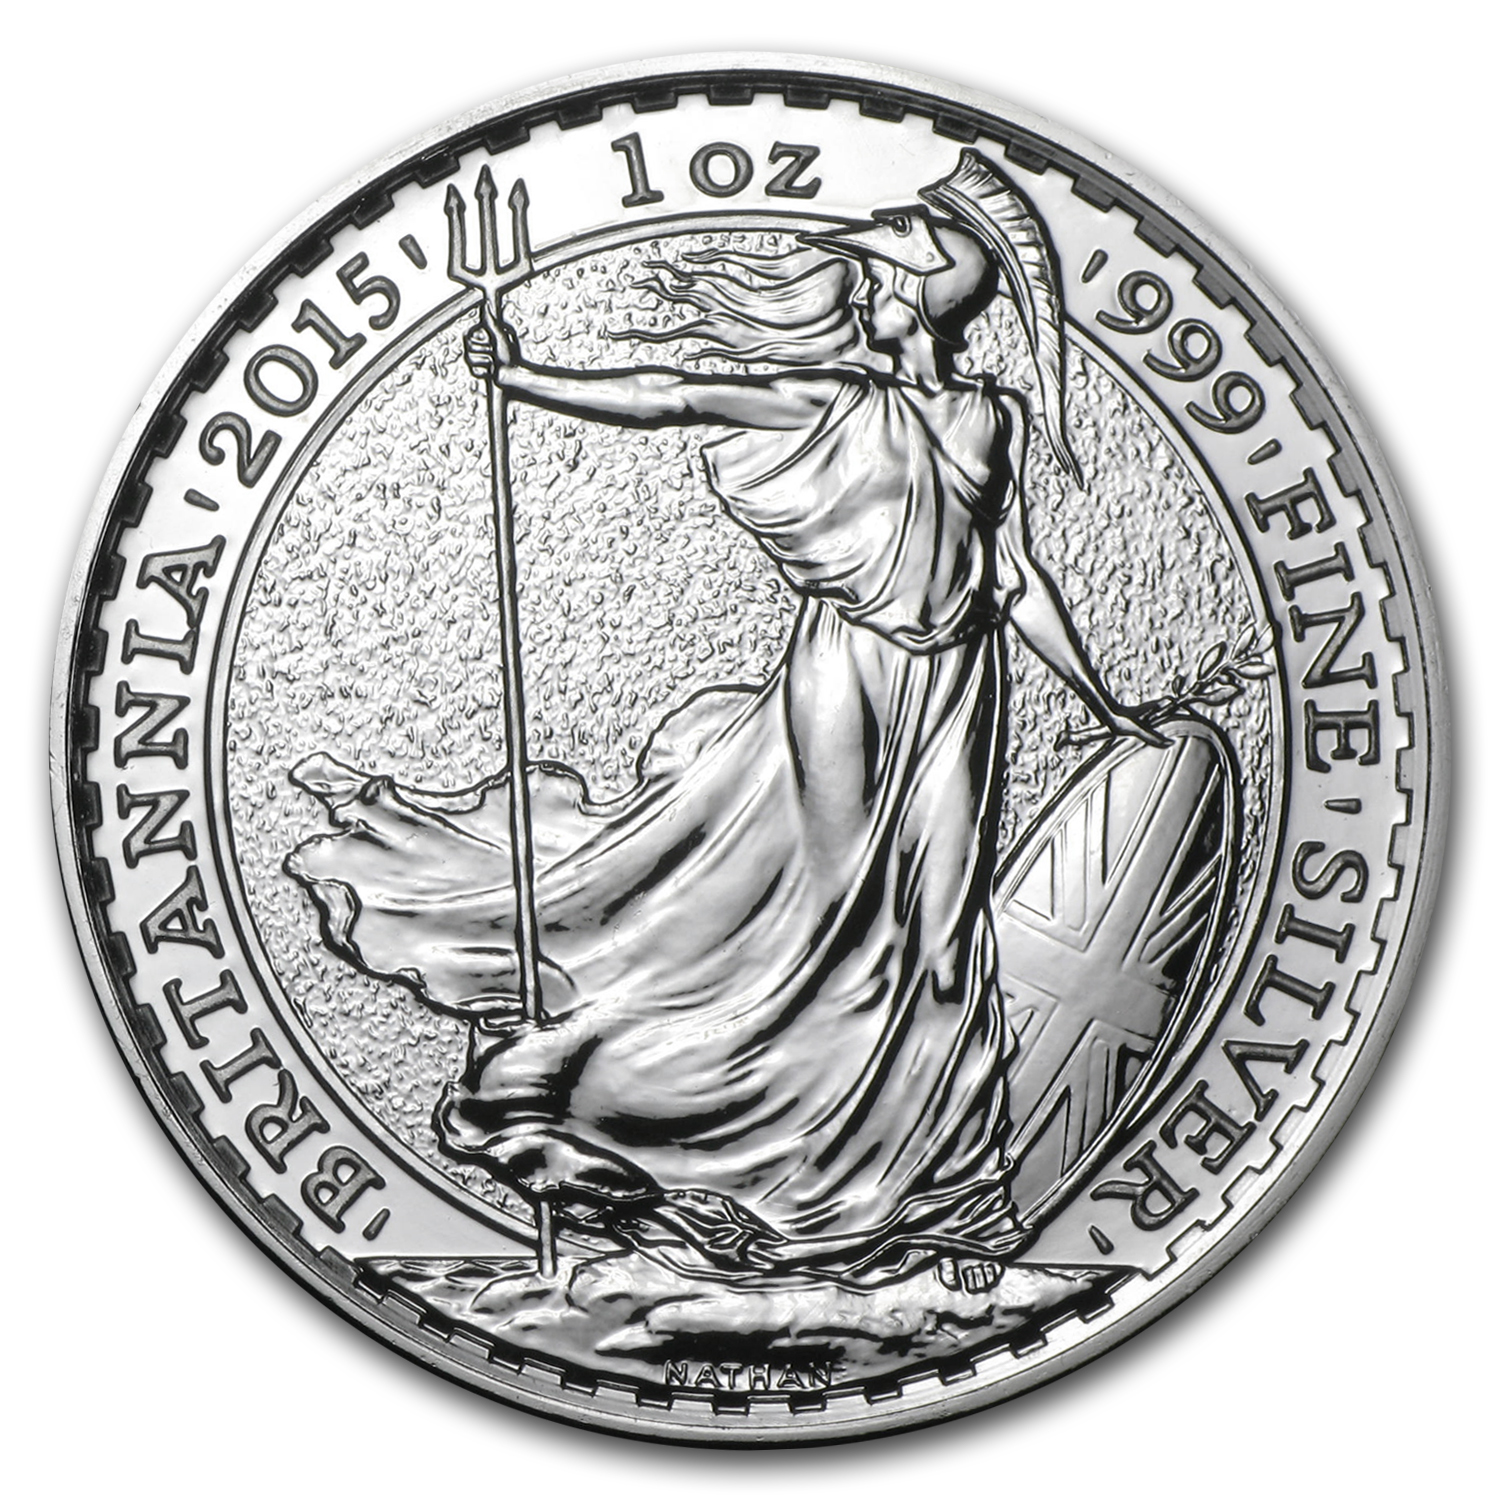 2015 Great Britain 1 oz Silver Britannia BU